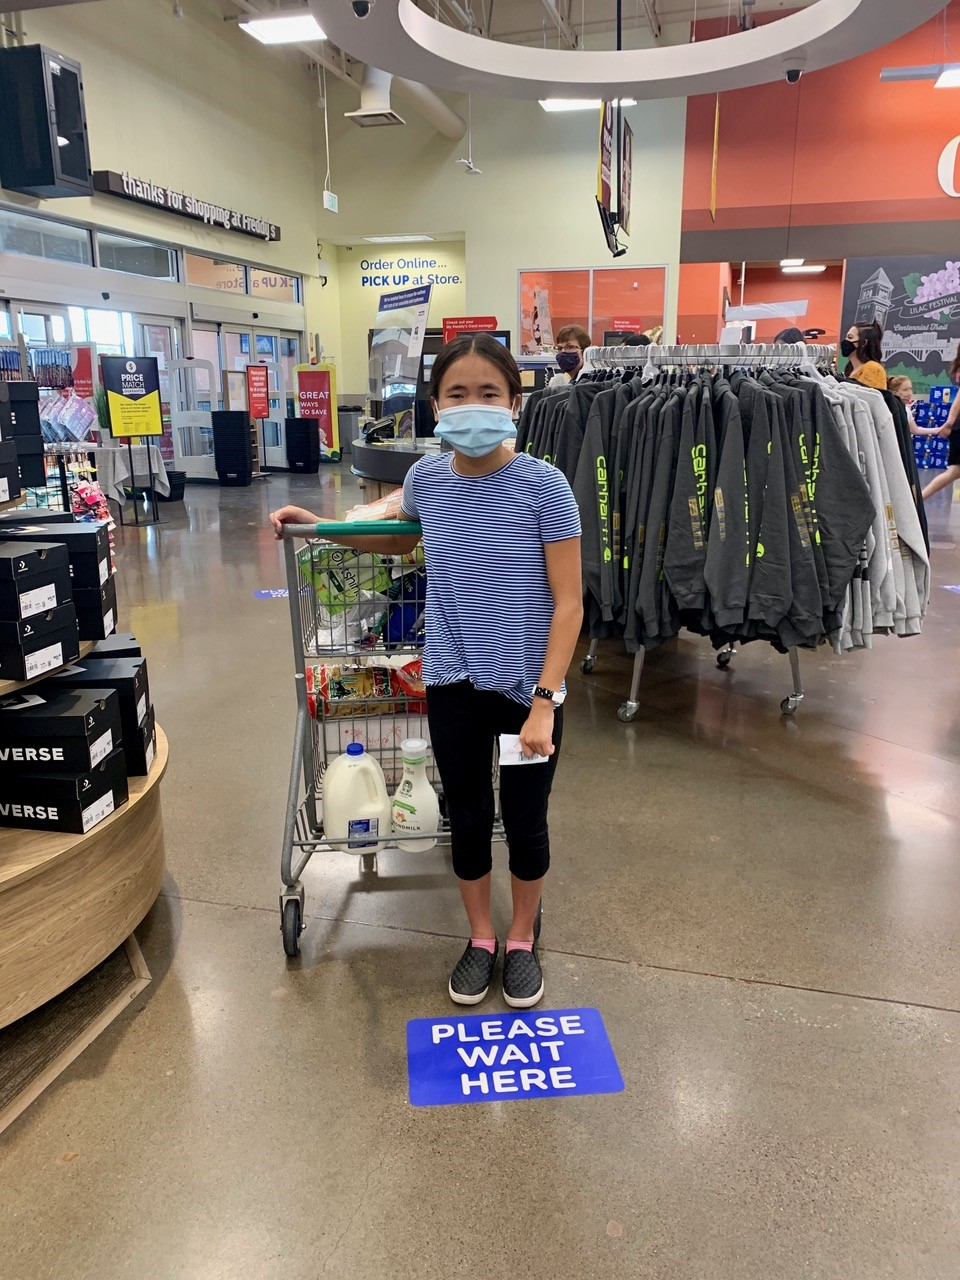 Take photos of things 'you've never seen happen before' (like wearing masks to the grocery store) to document your experience. (Image: Stacy Julian)